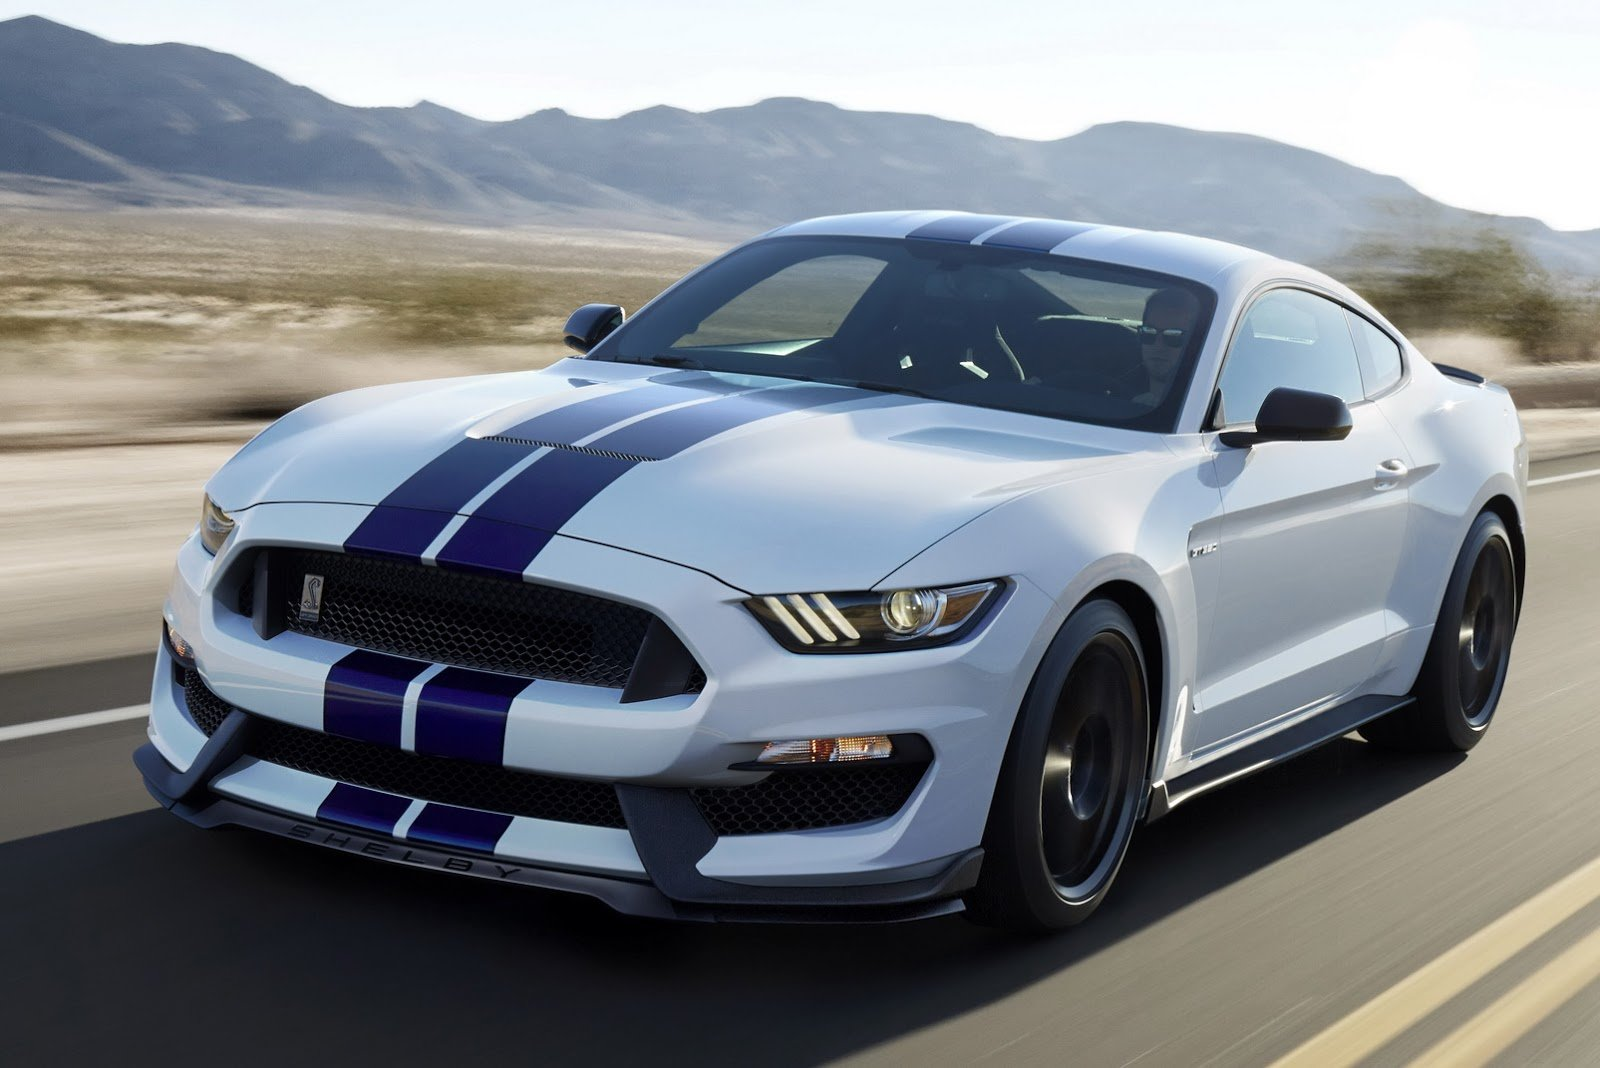 Mustang Shelby Coupe Muscle Cars Usa Wallpaper